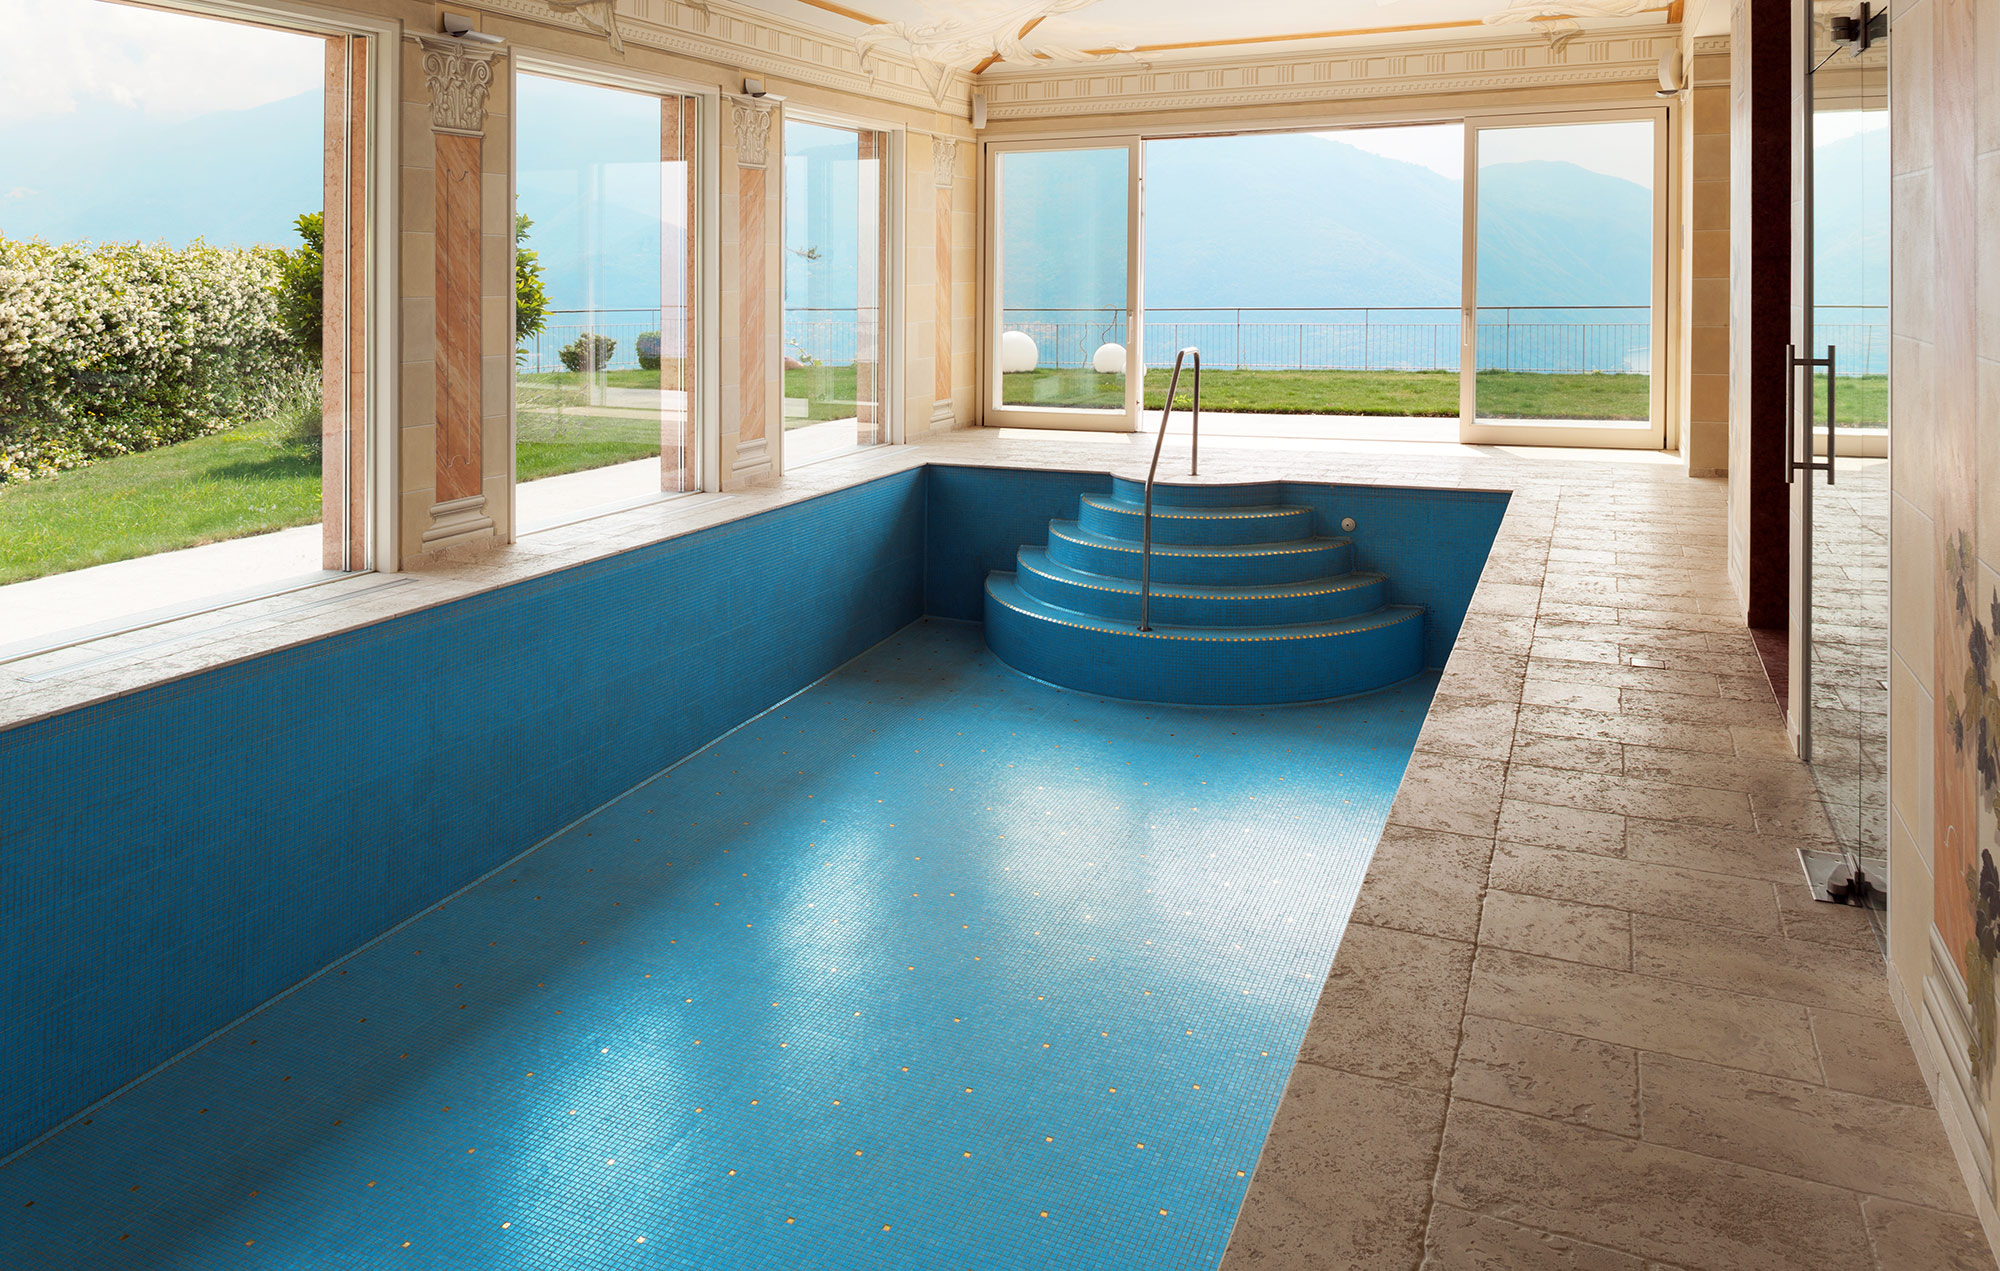 Chlorinated rubber paints thomas howse limited - Chlorinated rubber swimming pool paint ...